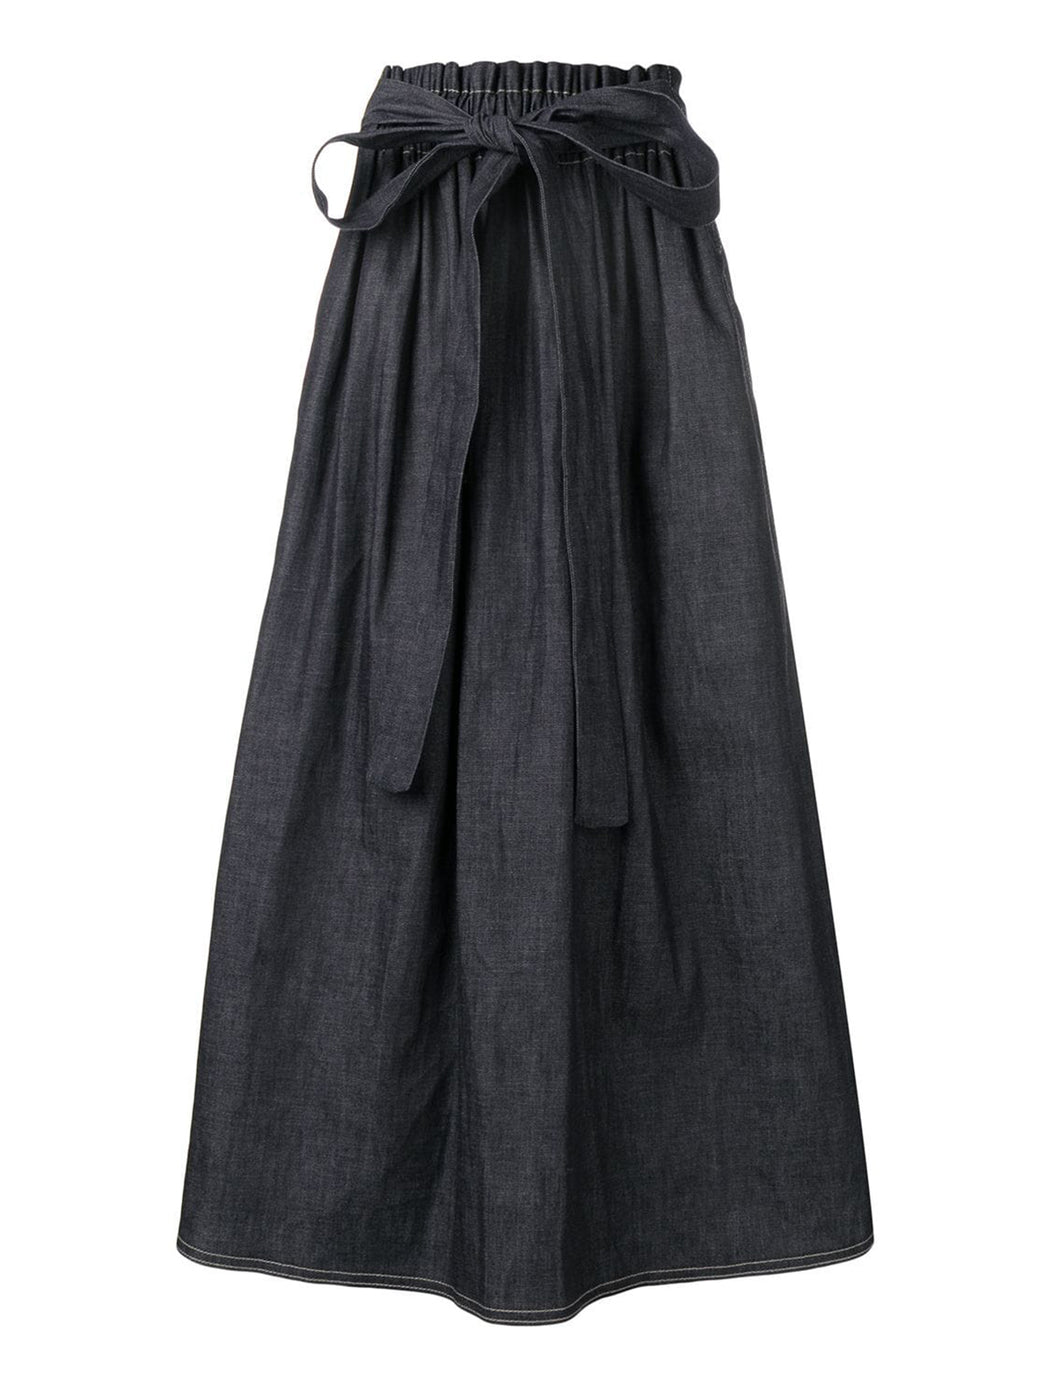 Sash Skirt with Knotted Belt